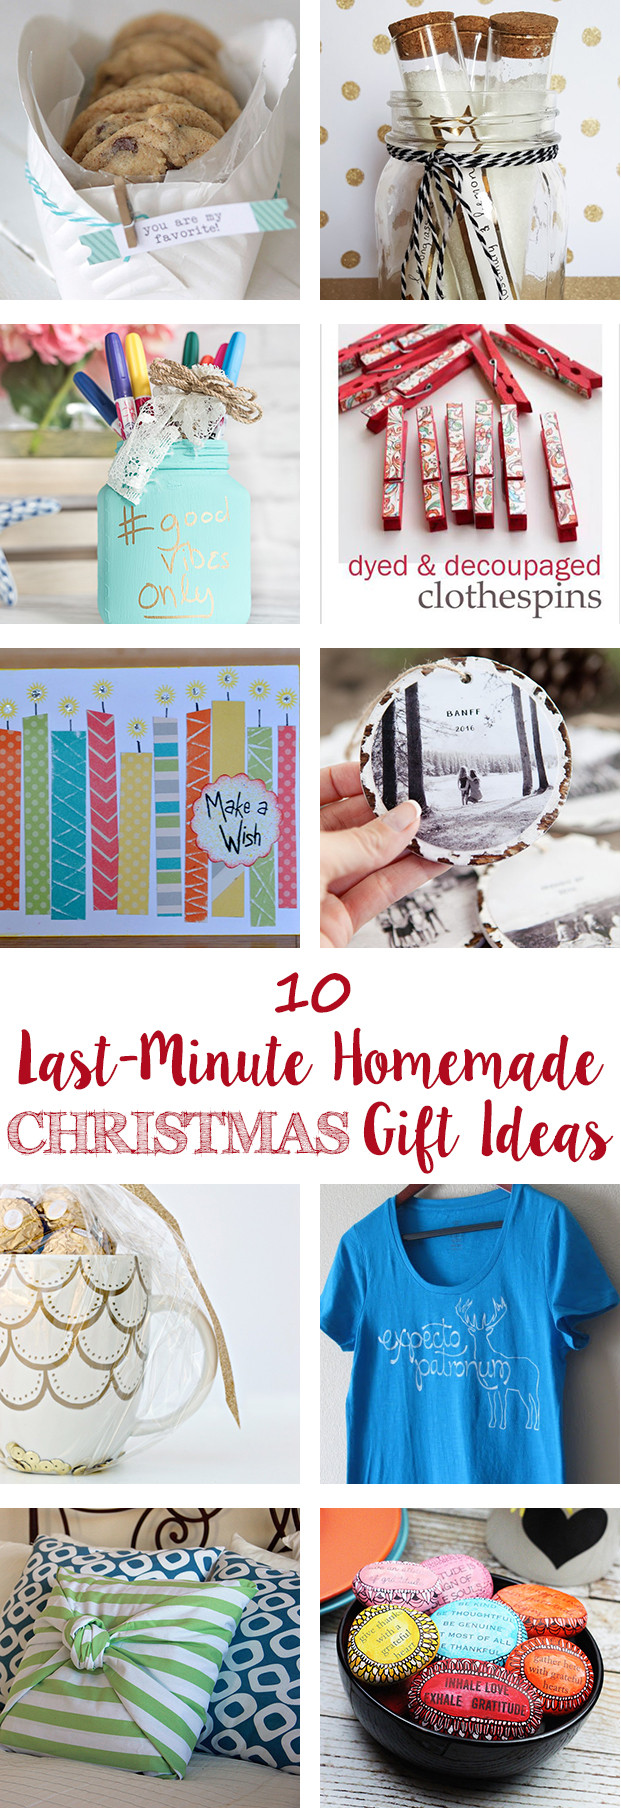 Last Minute Holiday Gift Ideas  Last Minute Homemade Christmas Gift Ideas • Rose Clearfield